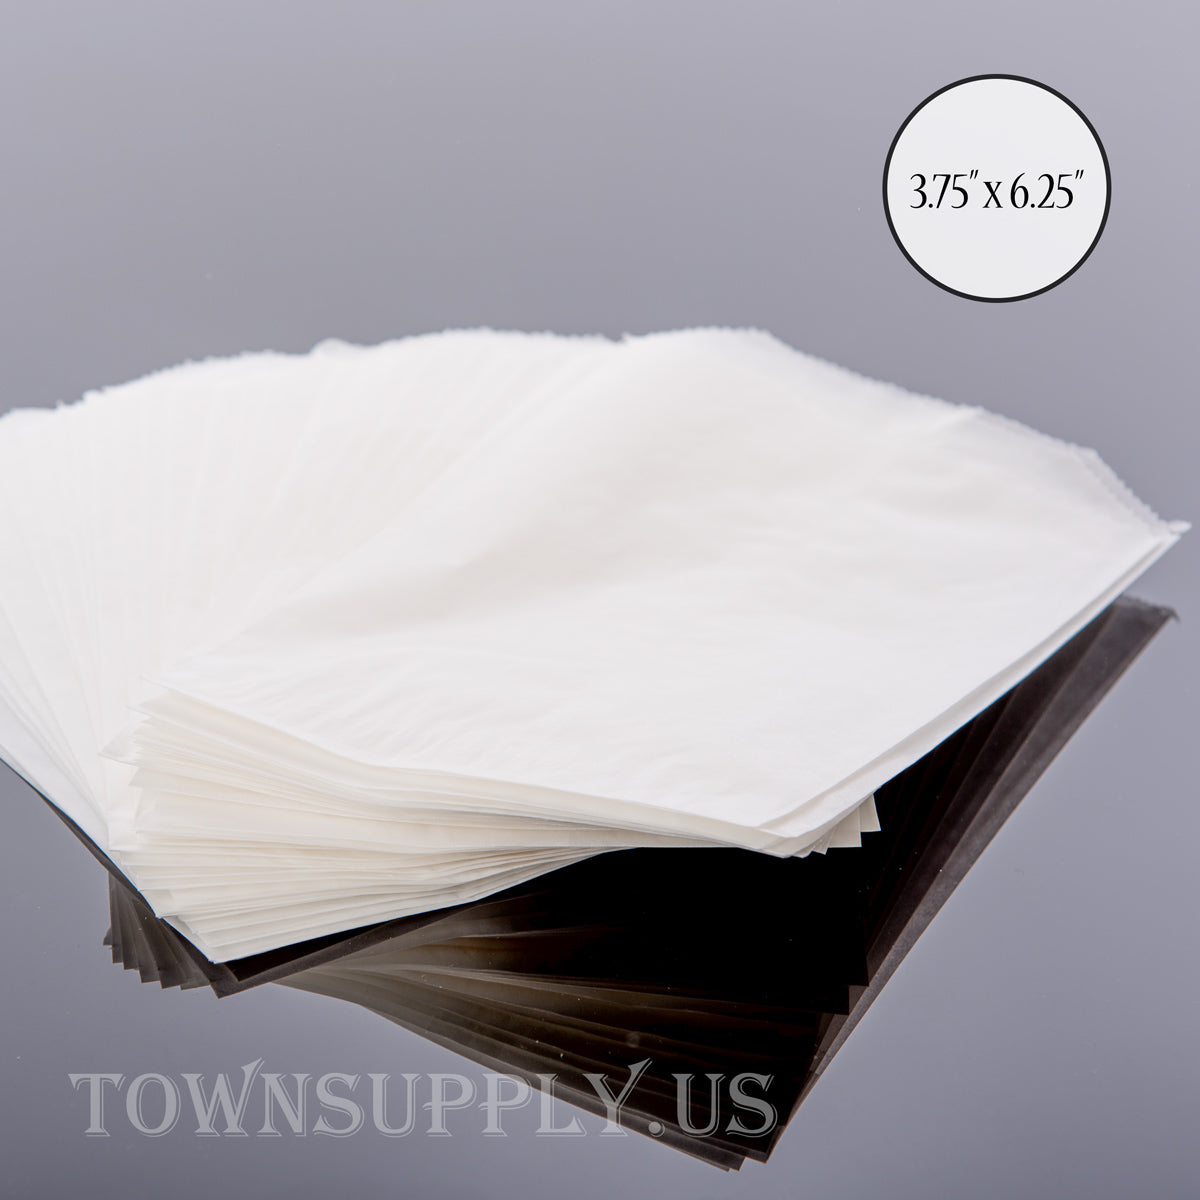 "50 pack - flat glassine bags, 3.75"" x 6.25"" translucent waxed paper envelopes - Town Supply"